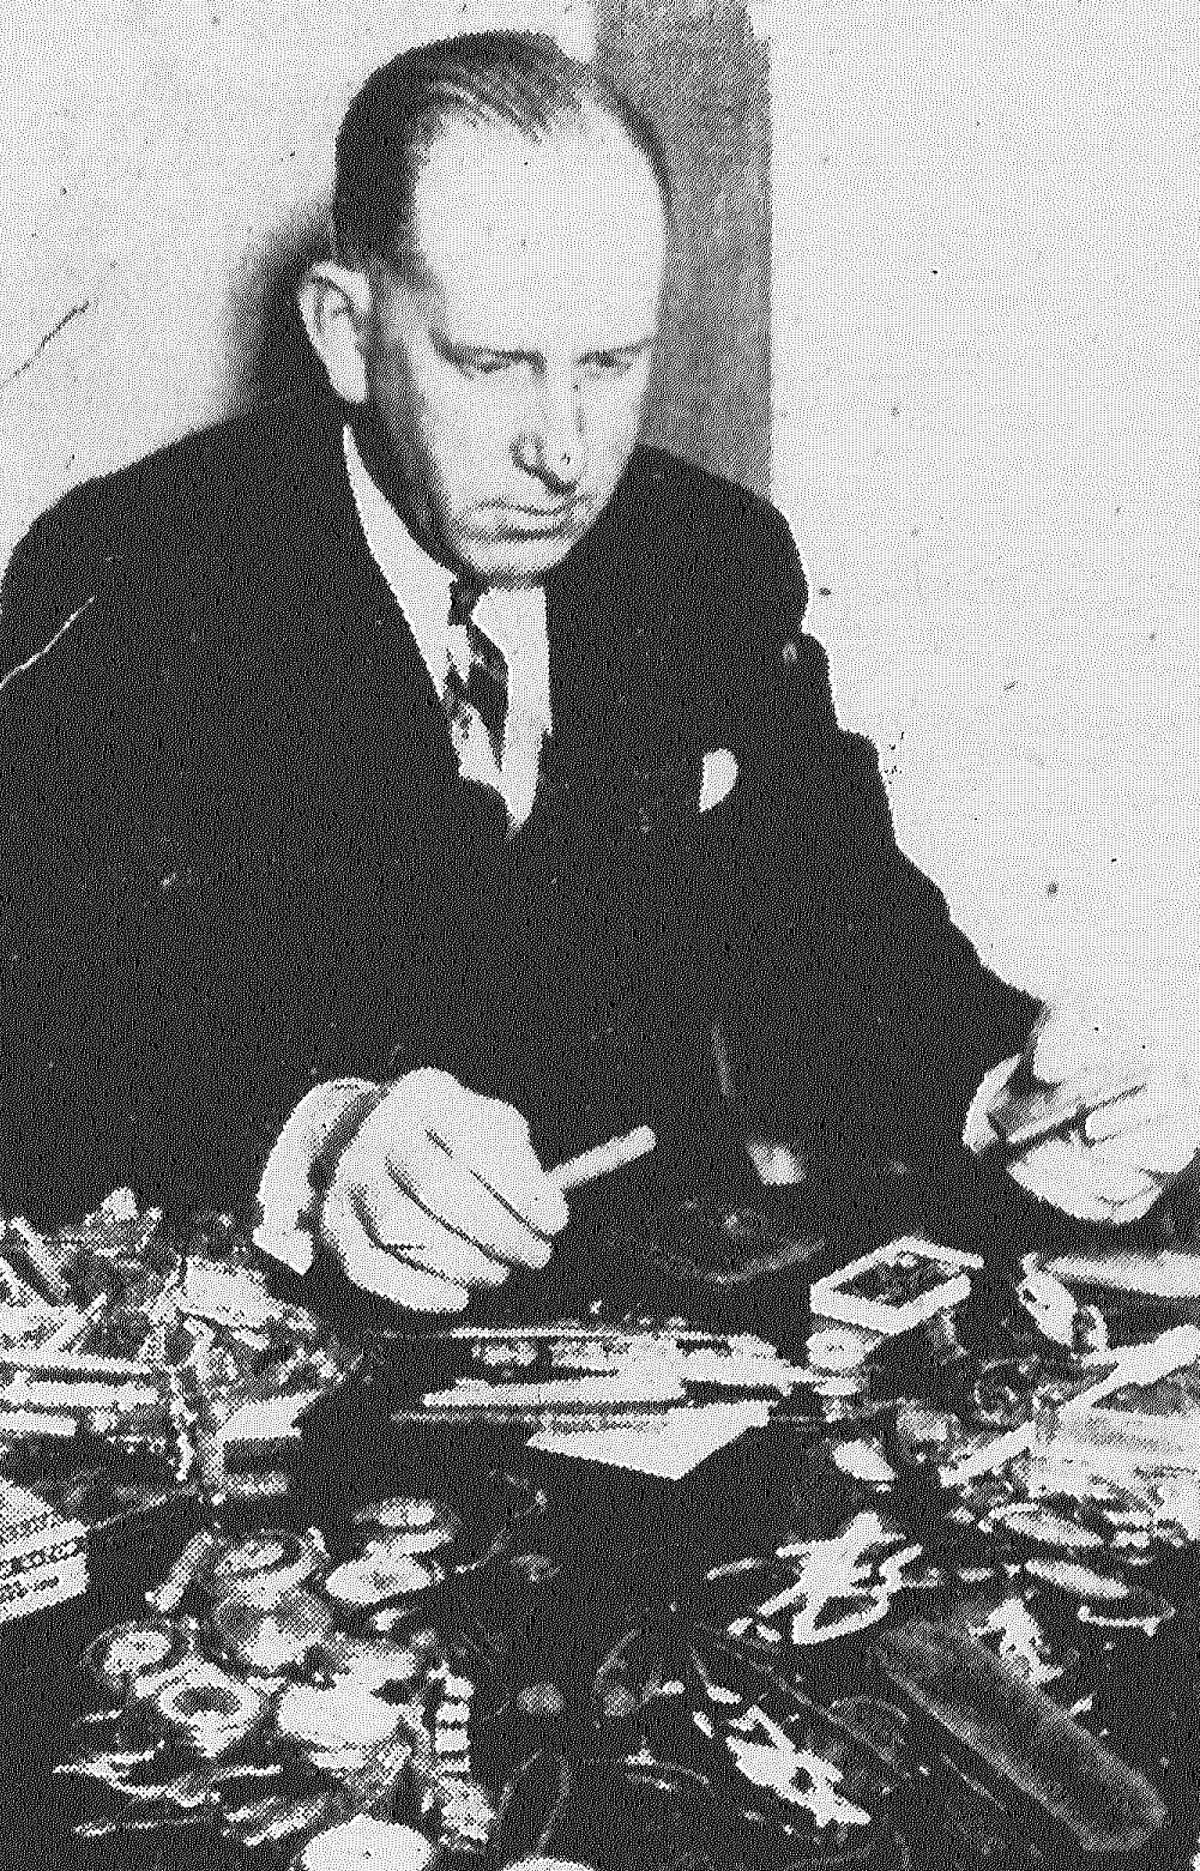 Ed Pytel, Chief of Police Owen Kilday's secretary, with some of the articles to be auctioned Friday by police. Among the articles, loot recovered or lost downtown and turned into police, are watches, safety razors, knives, combs and even a few toothbrushes. Published in the San Antonio Light Feb. 1, 1938.